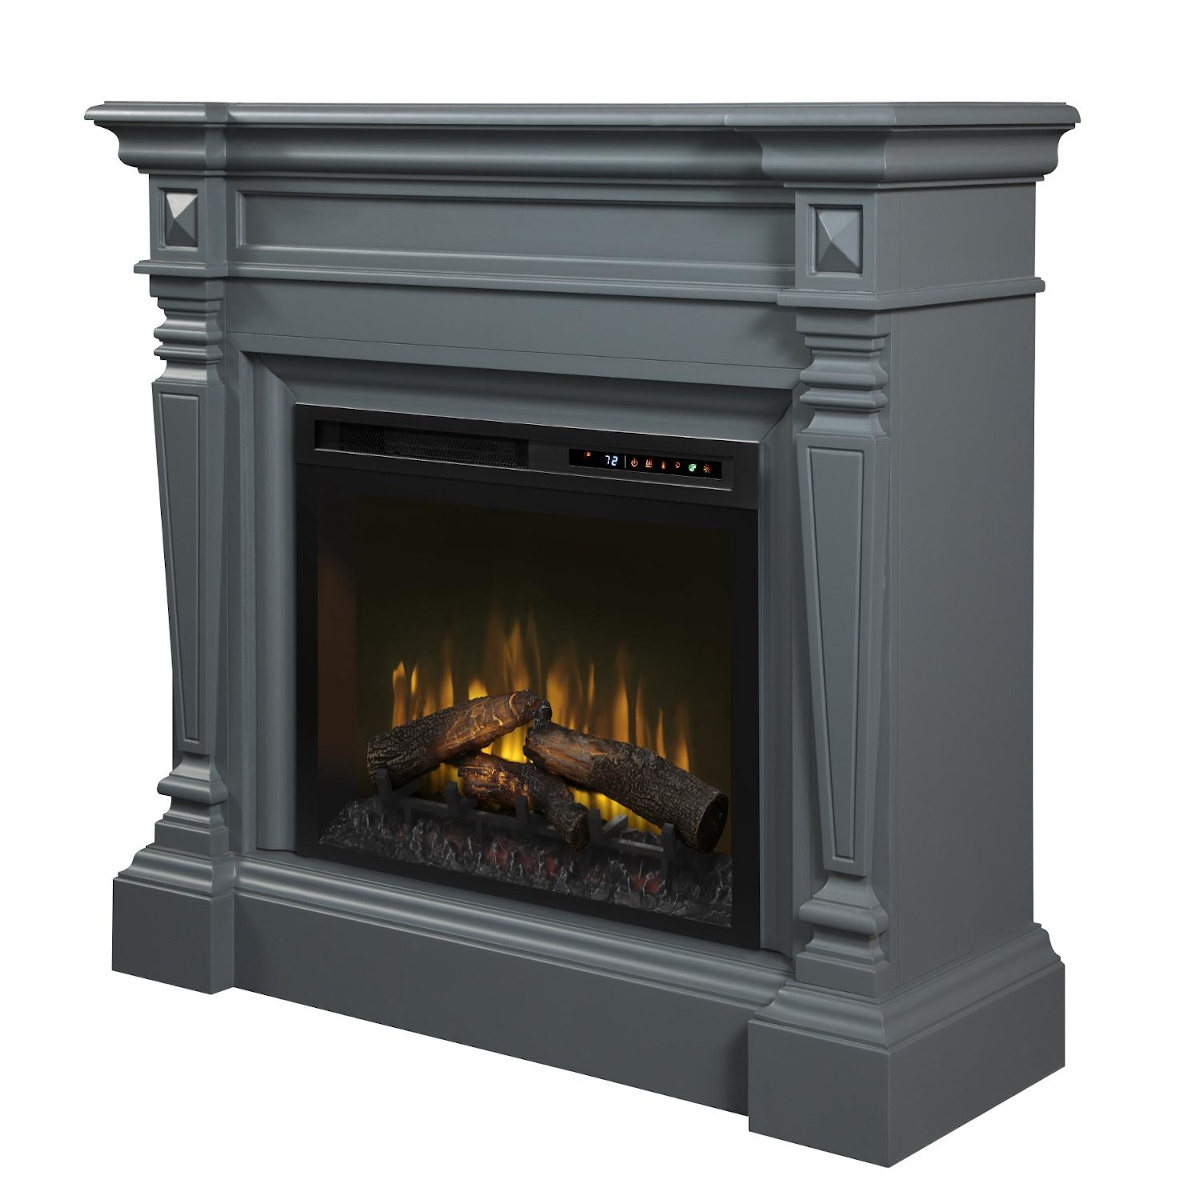 Dimplex grey wall mantel with traditional details and electric fireplace insert with logs